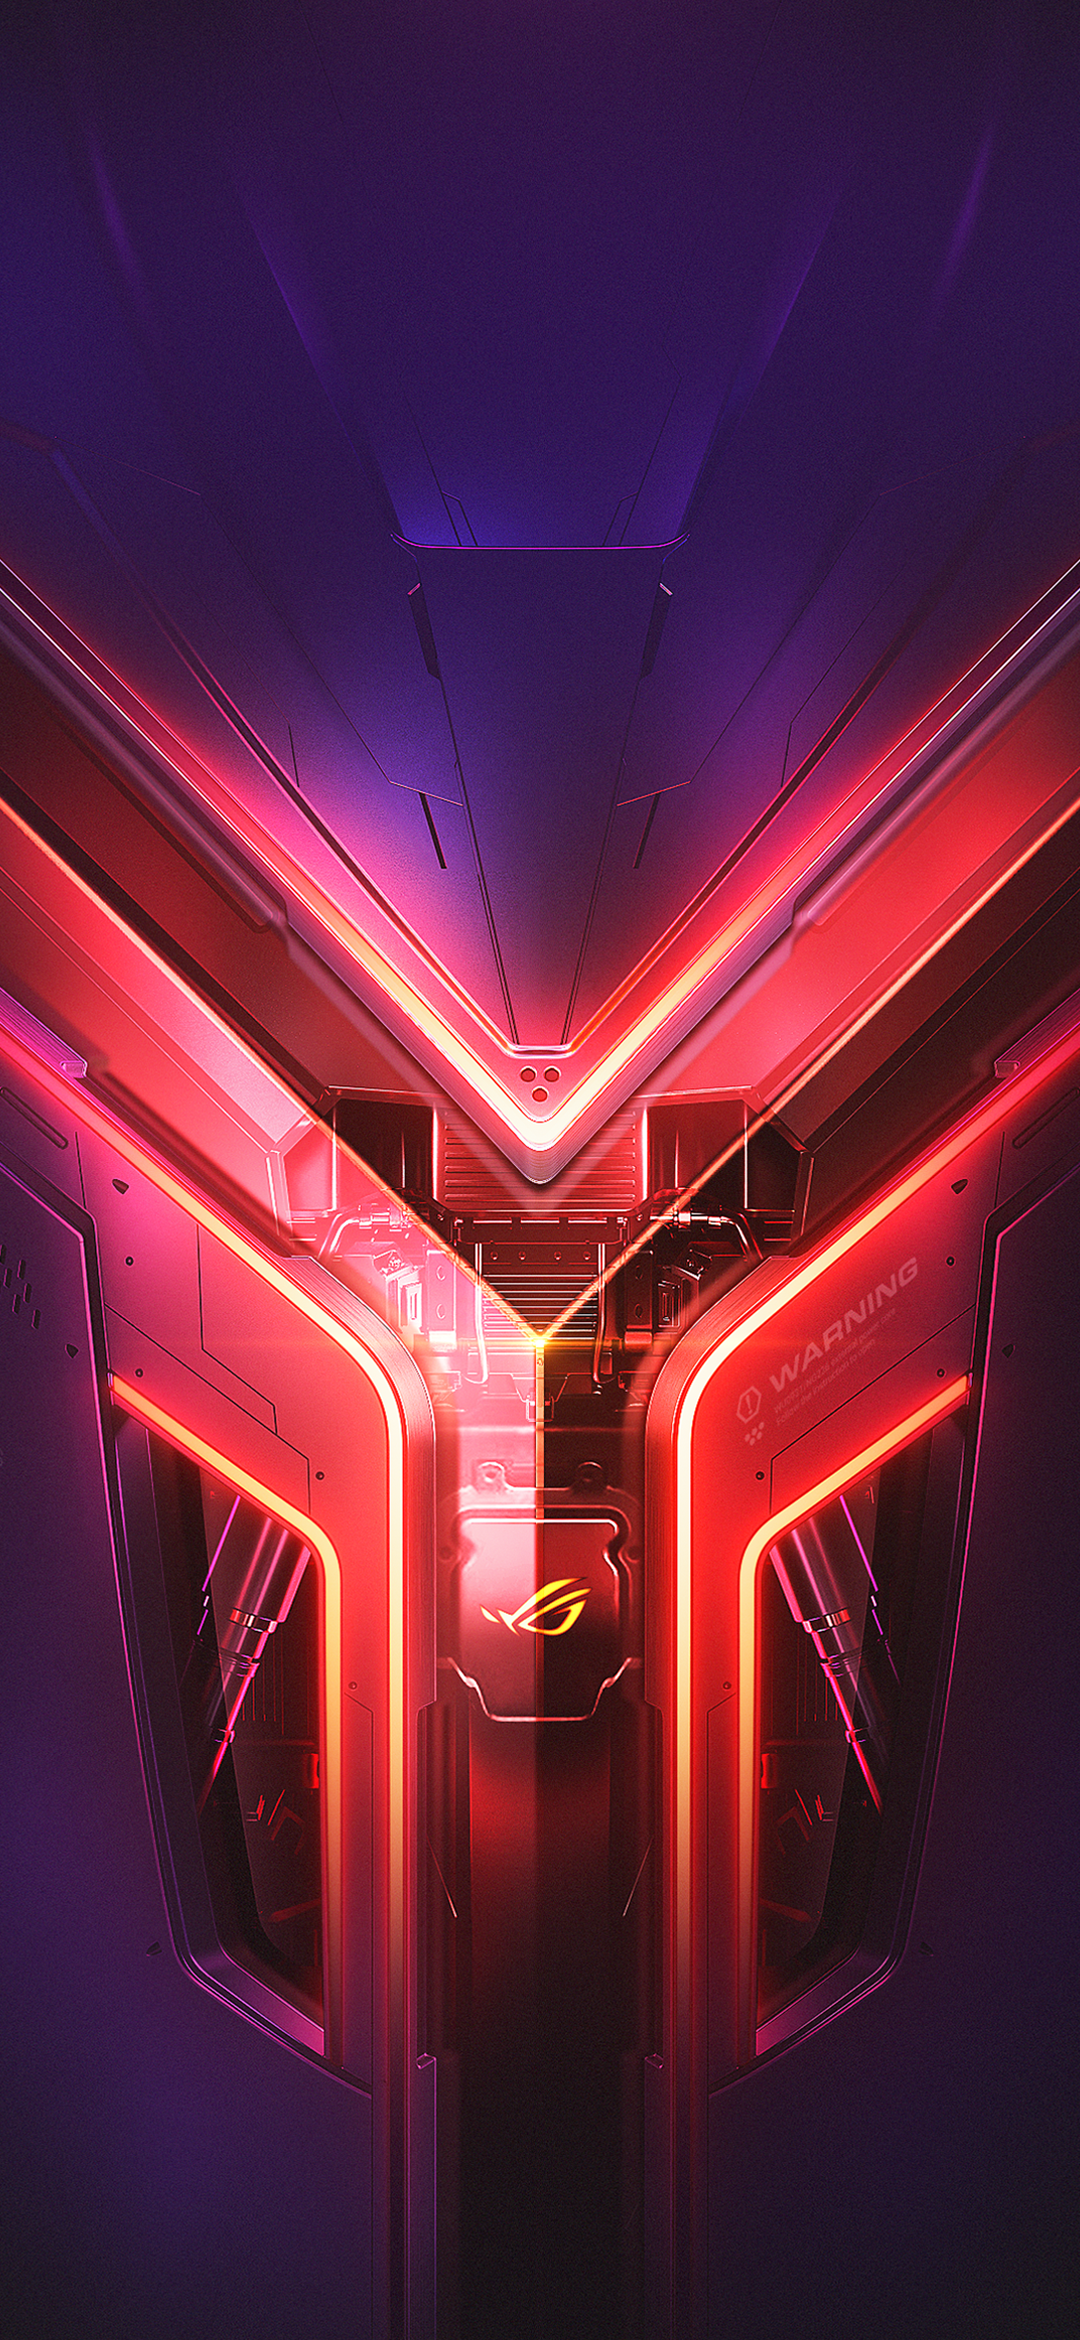 Descargar Asus Rog Phone 3 Stock Wallpapers Fhd In 2020 Iphone Wallpaper Ocean Hd Phone Wallpapers Cool Wallpapers For Phones